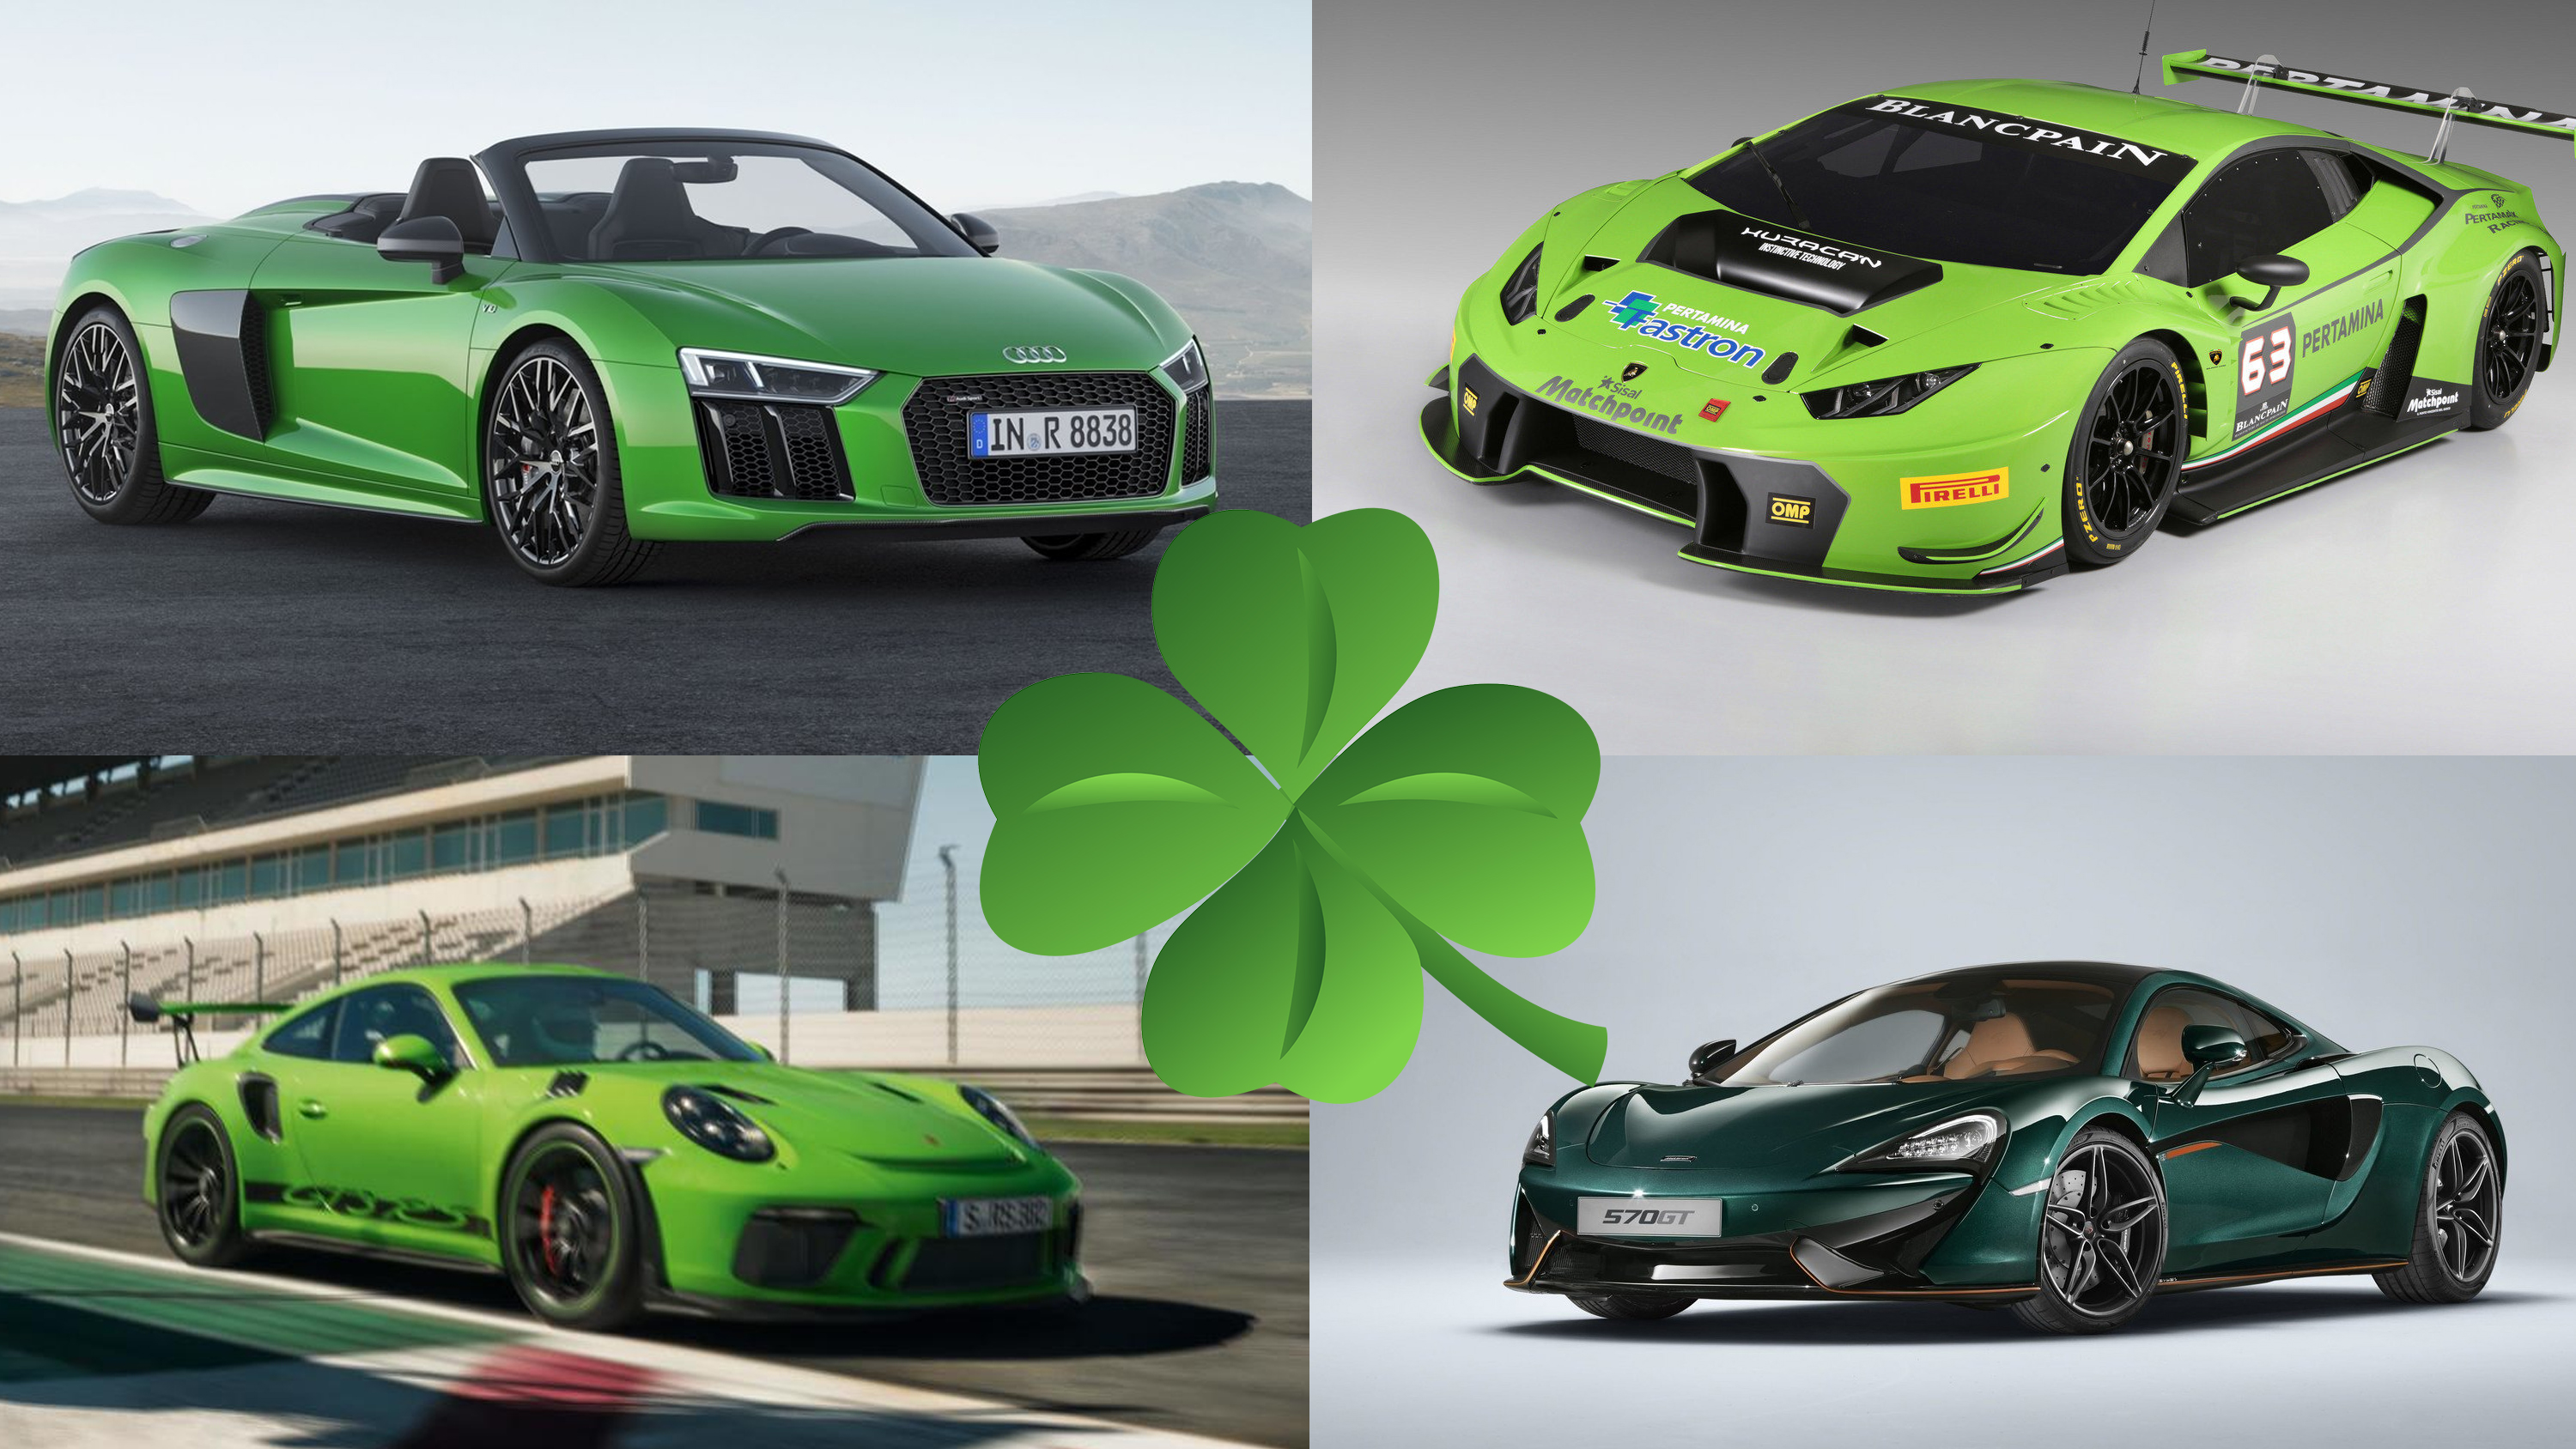 Saint Patrick S Day Special Check Out These Mean And